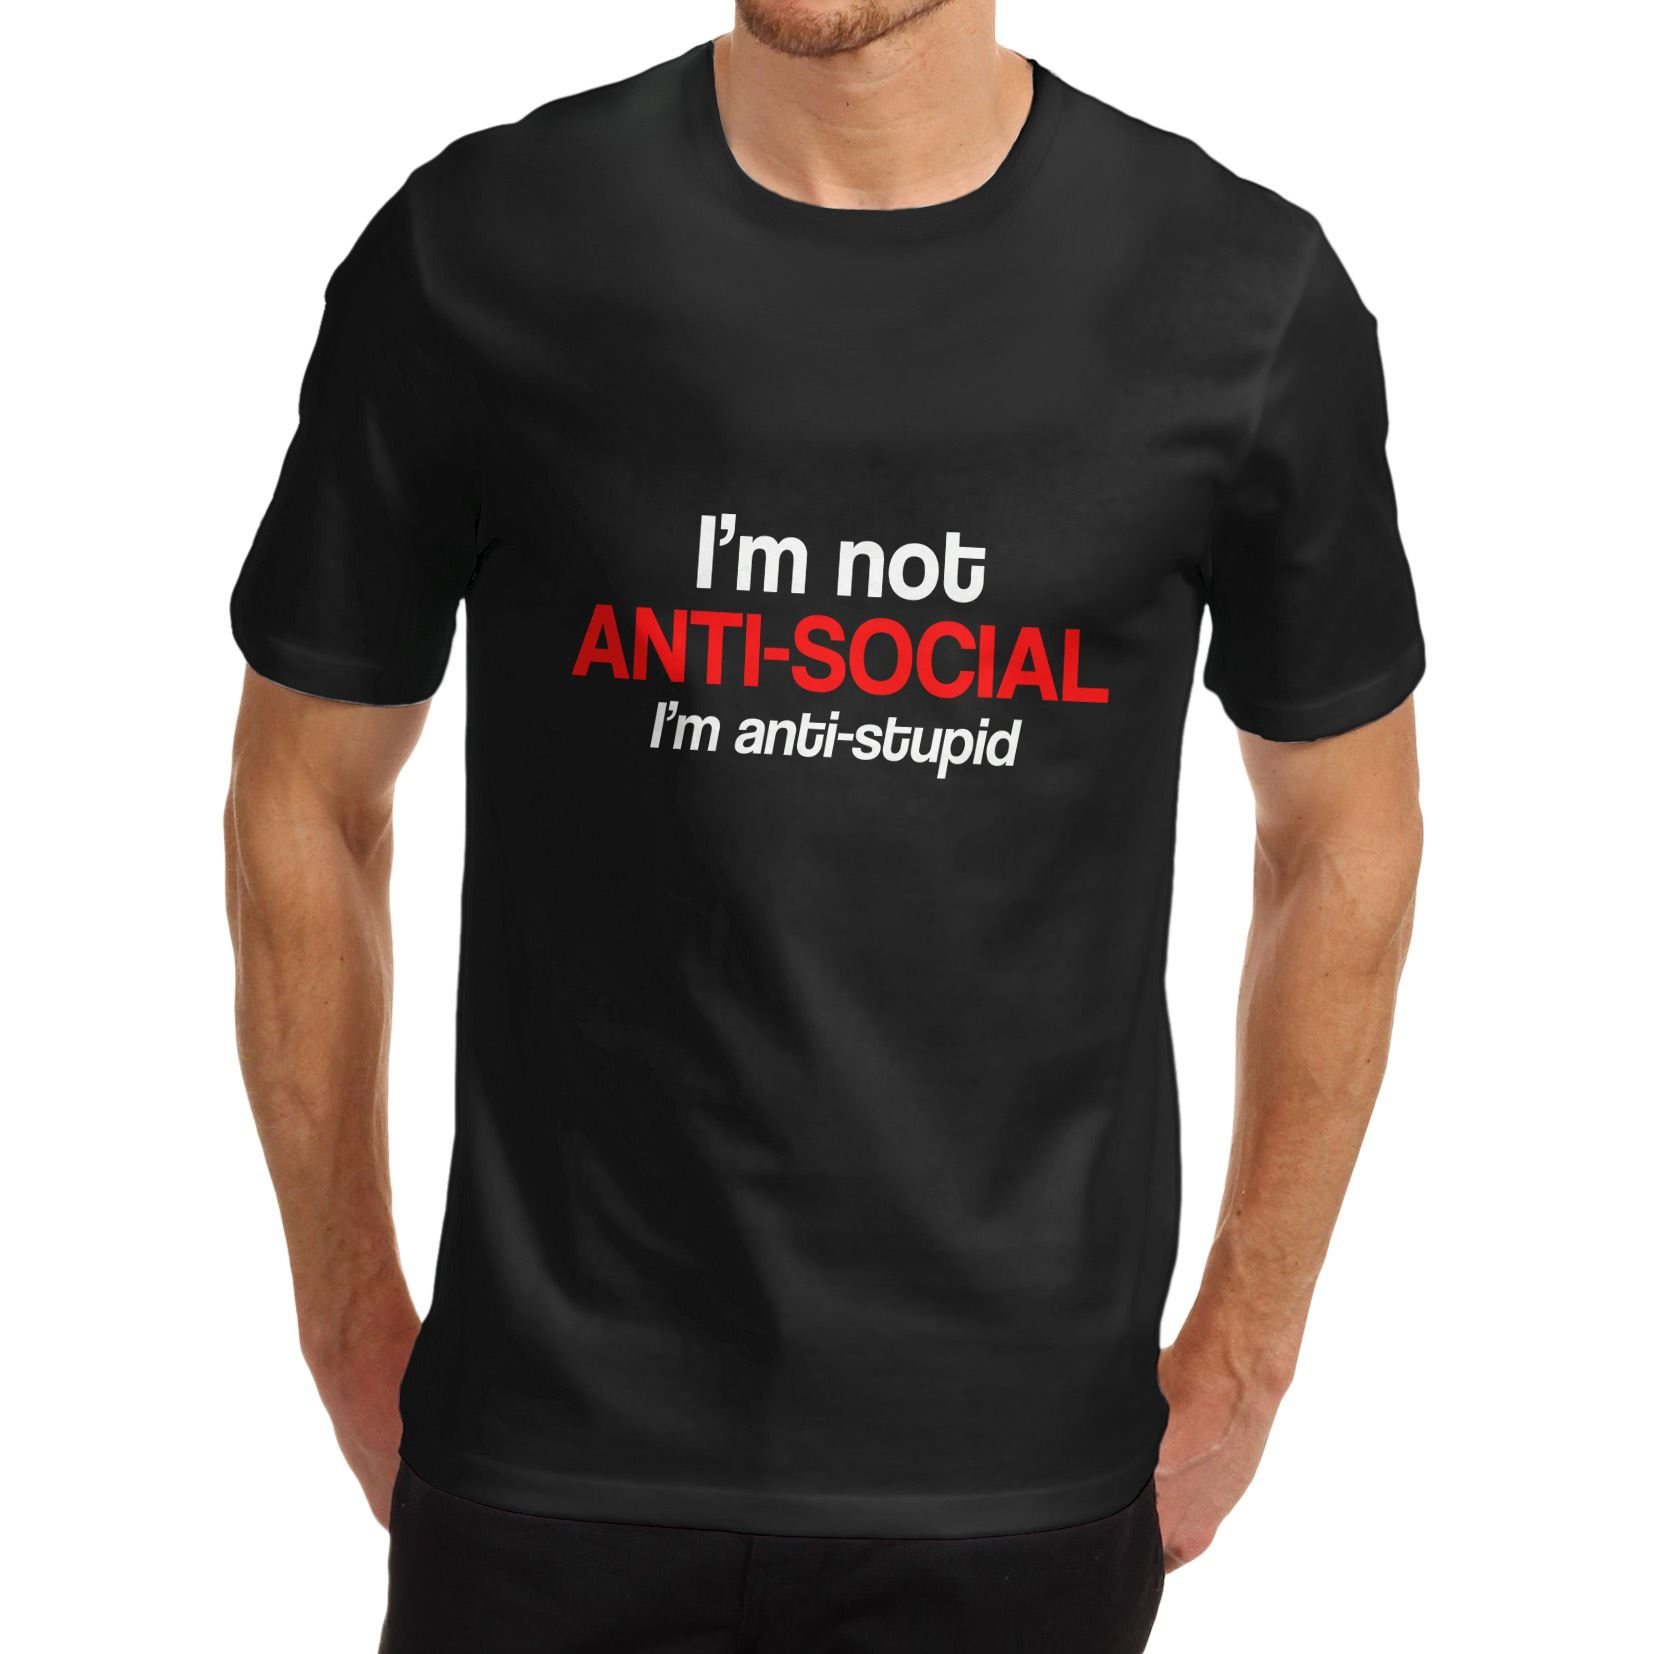 c73f2f44e Details about Twisted Envy Men's I'm Not Anti Social I'm Anti Stupid Funny T -Shirt